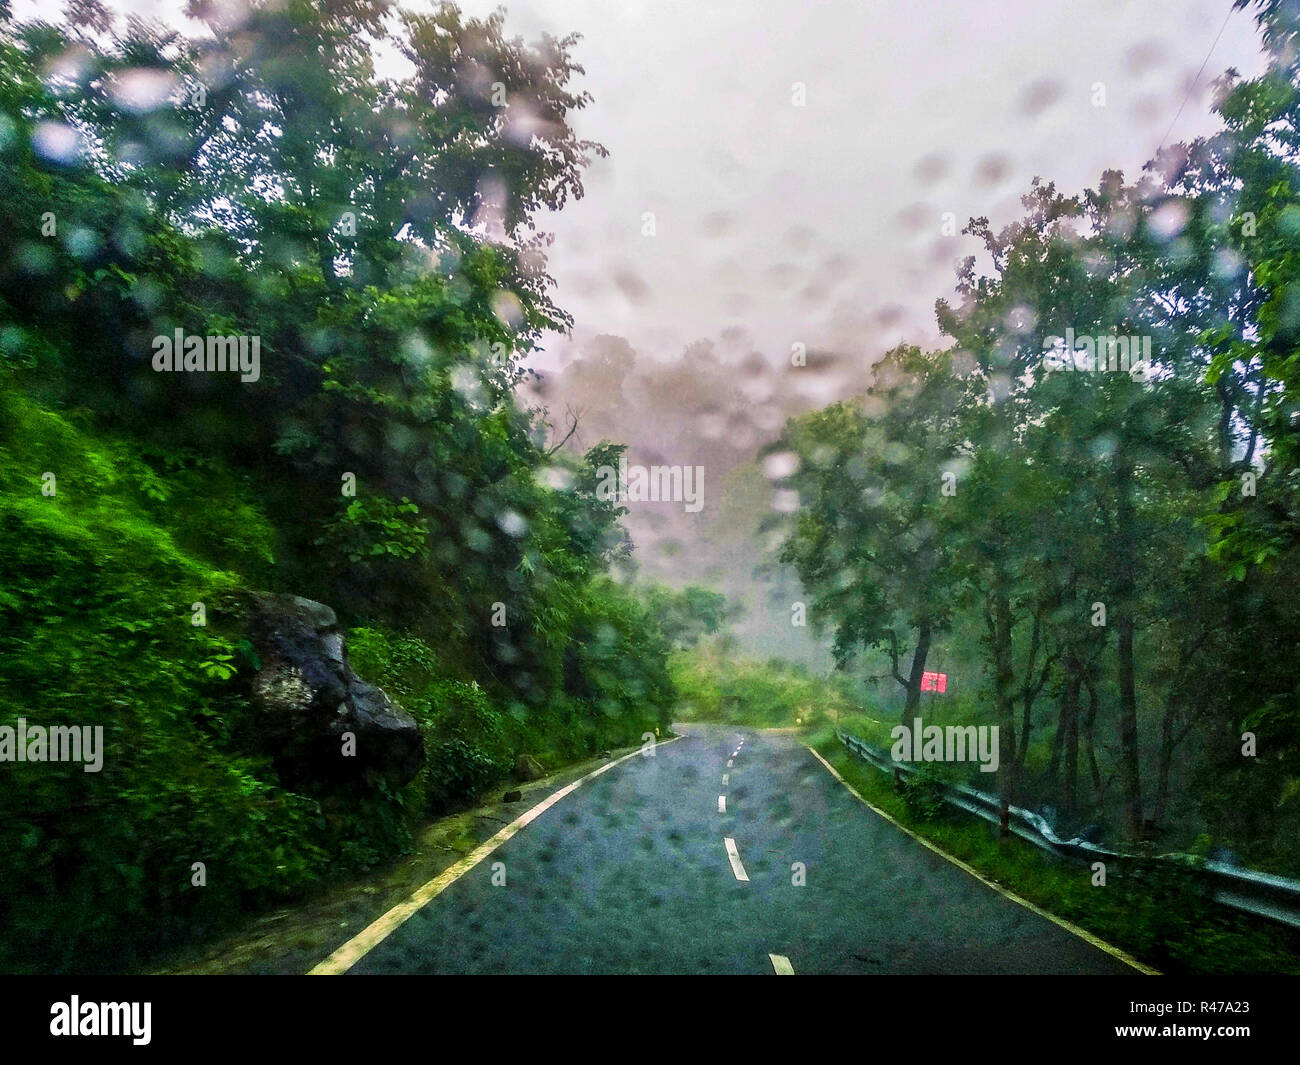 Driving down the mountain road in the rain, rain drops on the windscreen - Stock Image